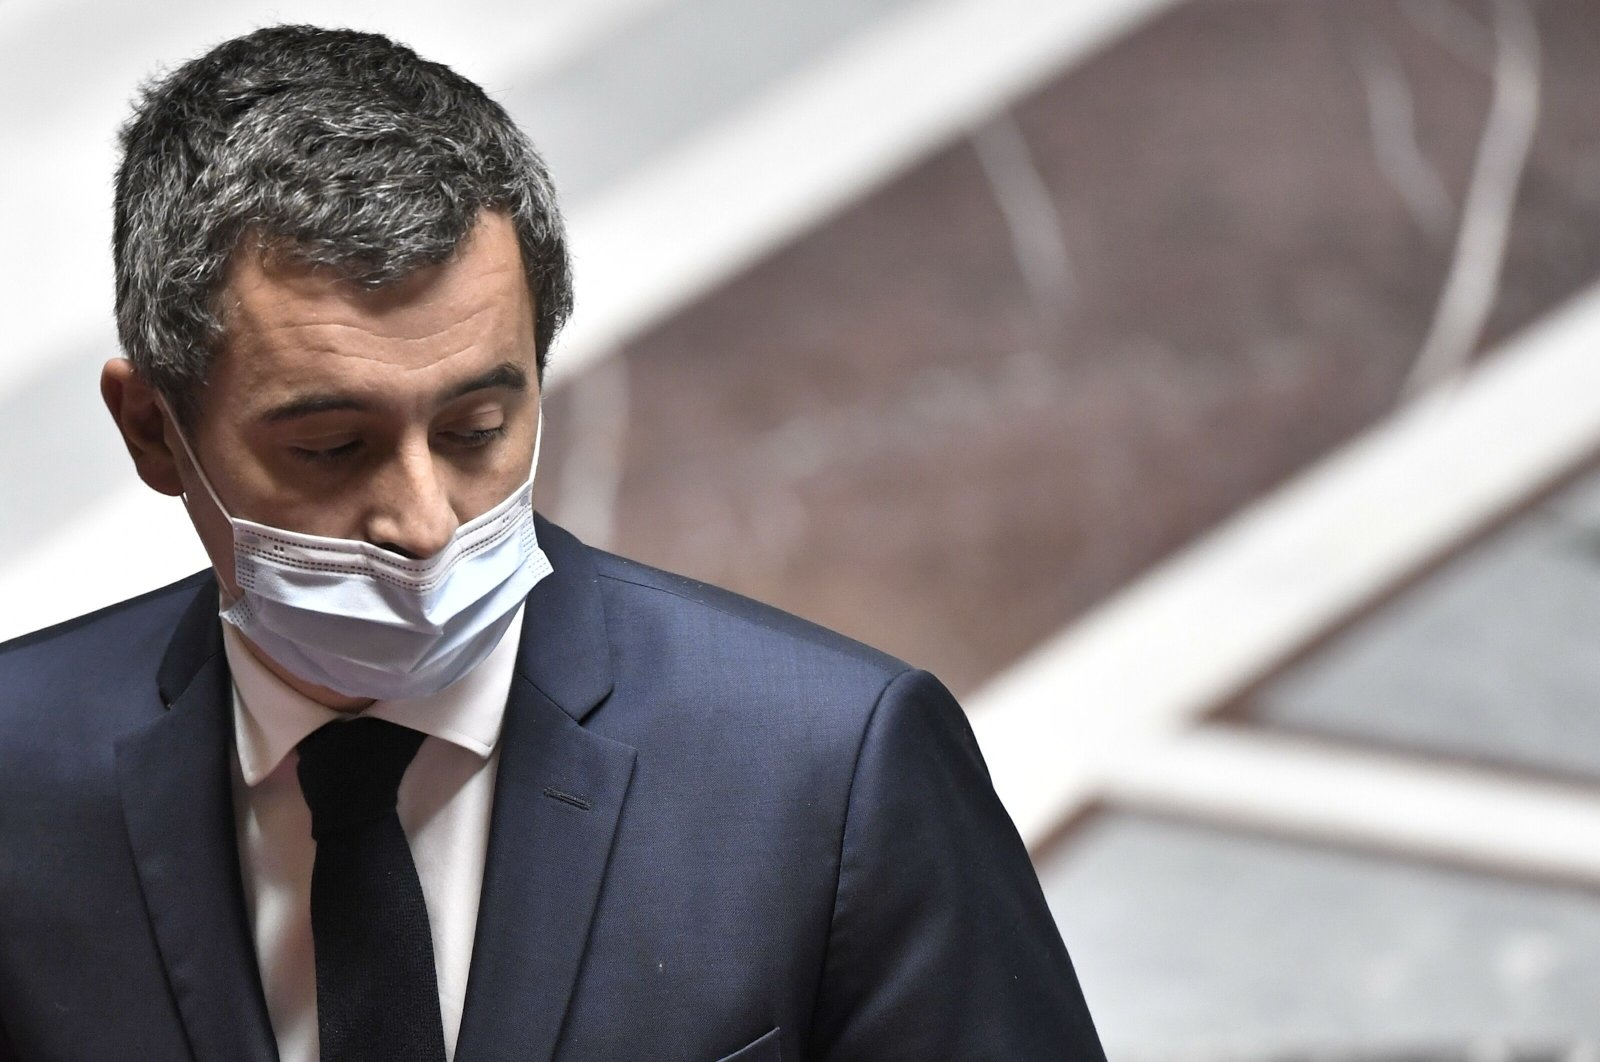 French Interior Minister Gerald Darmanin looks over during a session of questions to the government at the French National Assembly in Paris, France, Nov. 3, 2020. (AFP Photo)